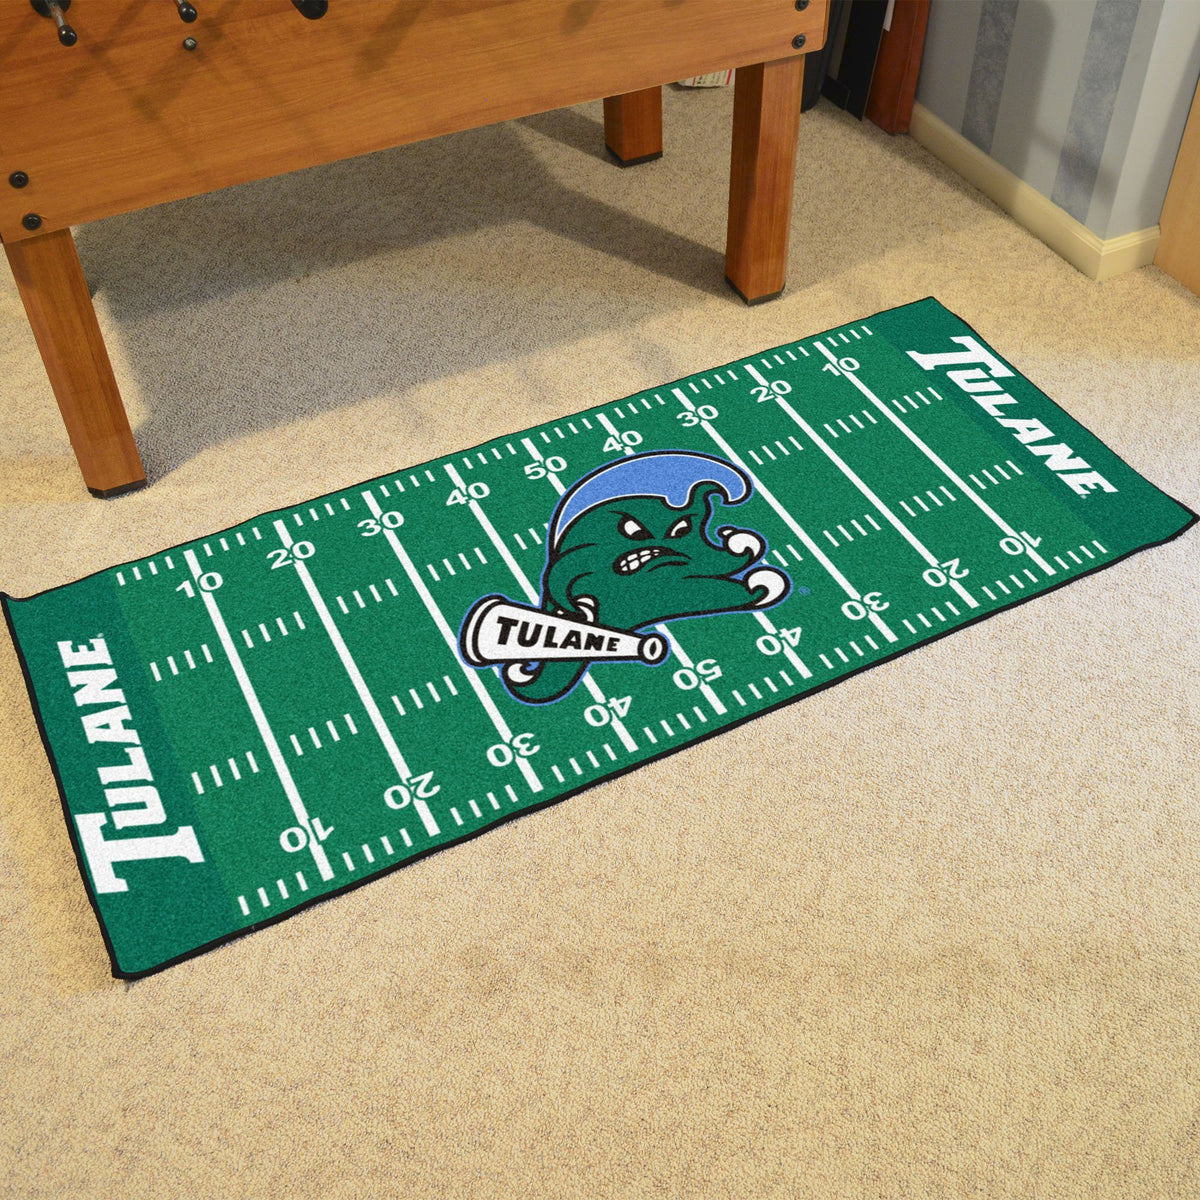 Collegiate - Football Field Runner Collegiate Mats, Rectangular Mats, Football Field Runner, Collegiate, Home Fan Mats Tulane